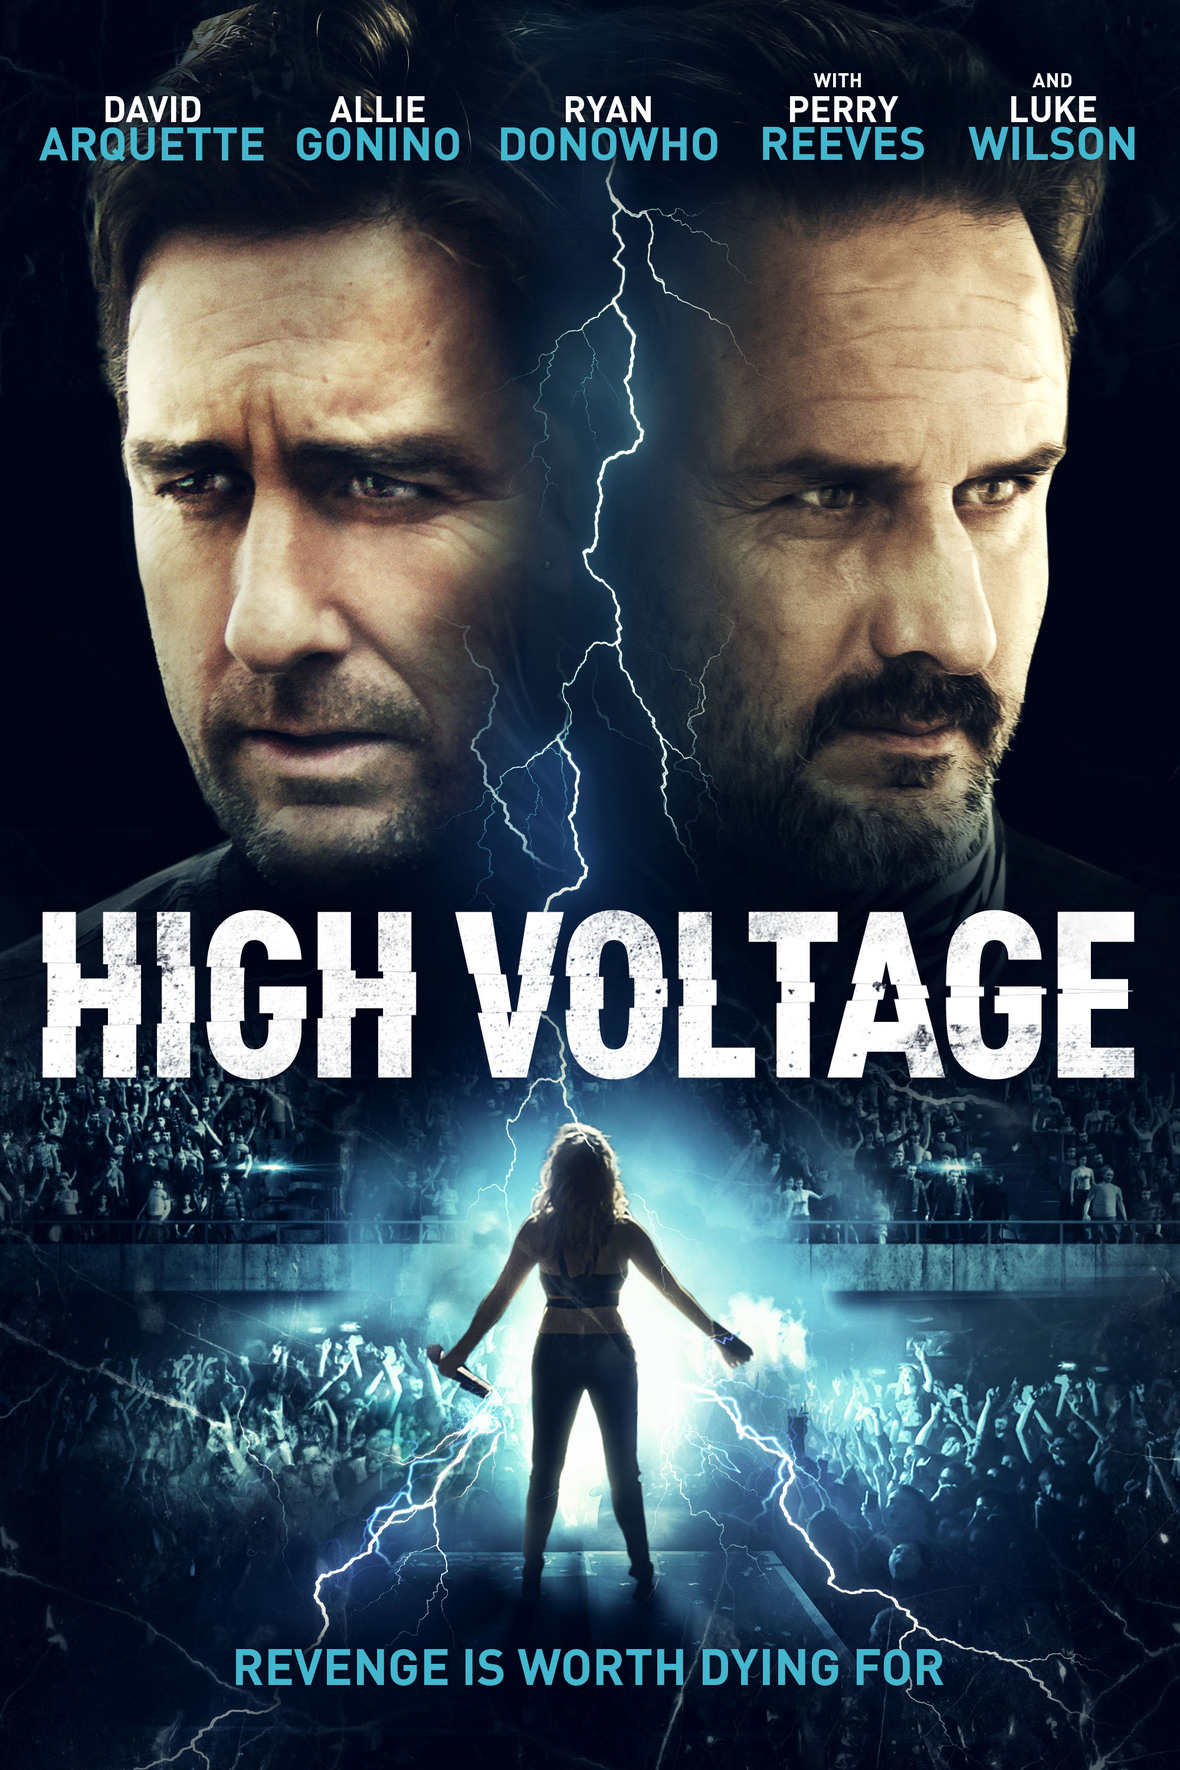 HIGH VOLTAGE Release Poster